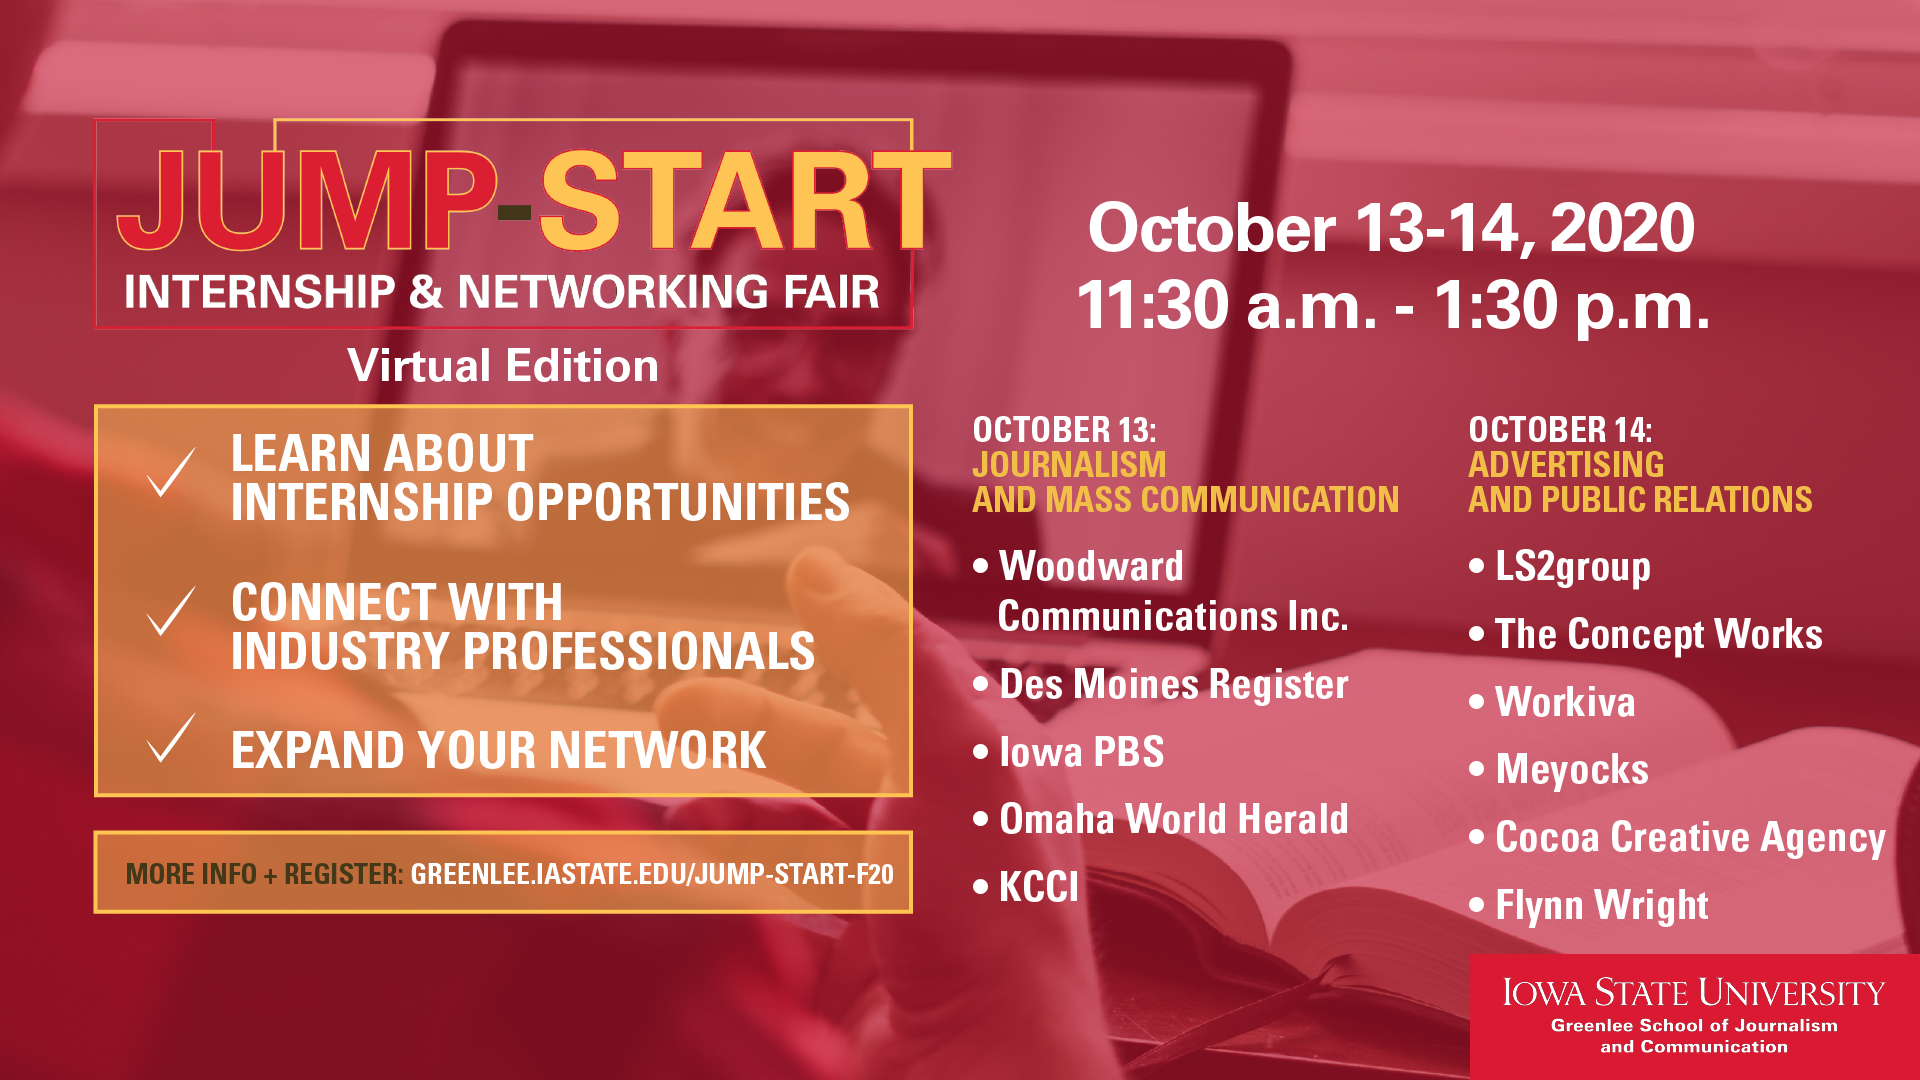 fall 2020 Jump-Start Internship and Networking Fair graphic